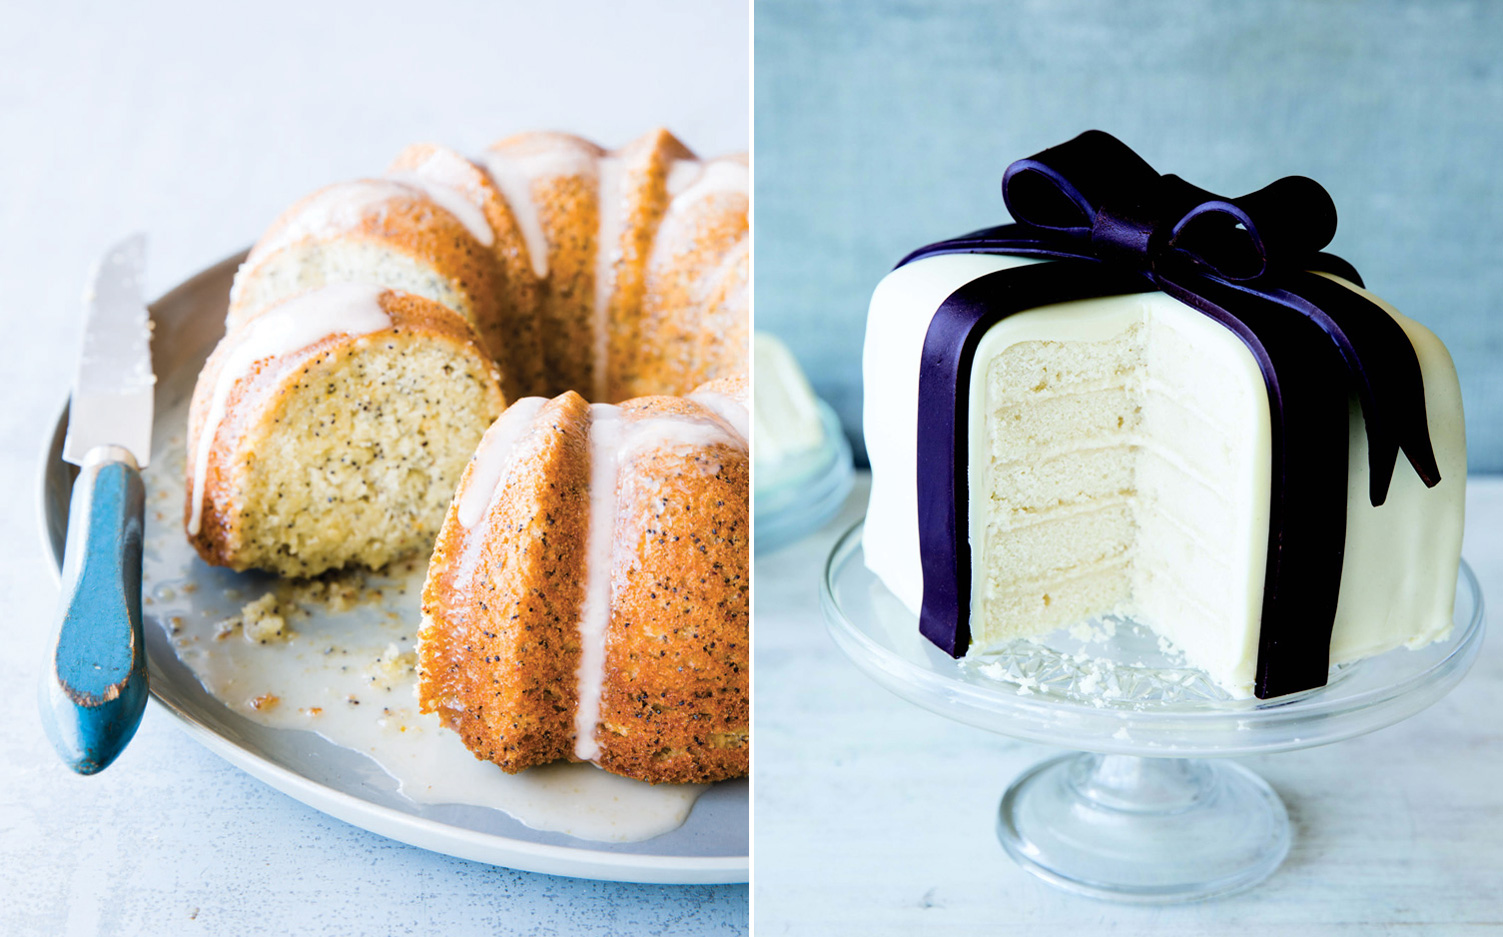 Pictures of cake from Catherine Ruehle's cookbook Let Us All Eat Cake